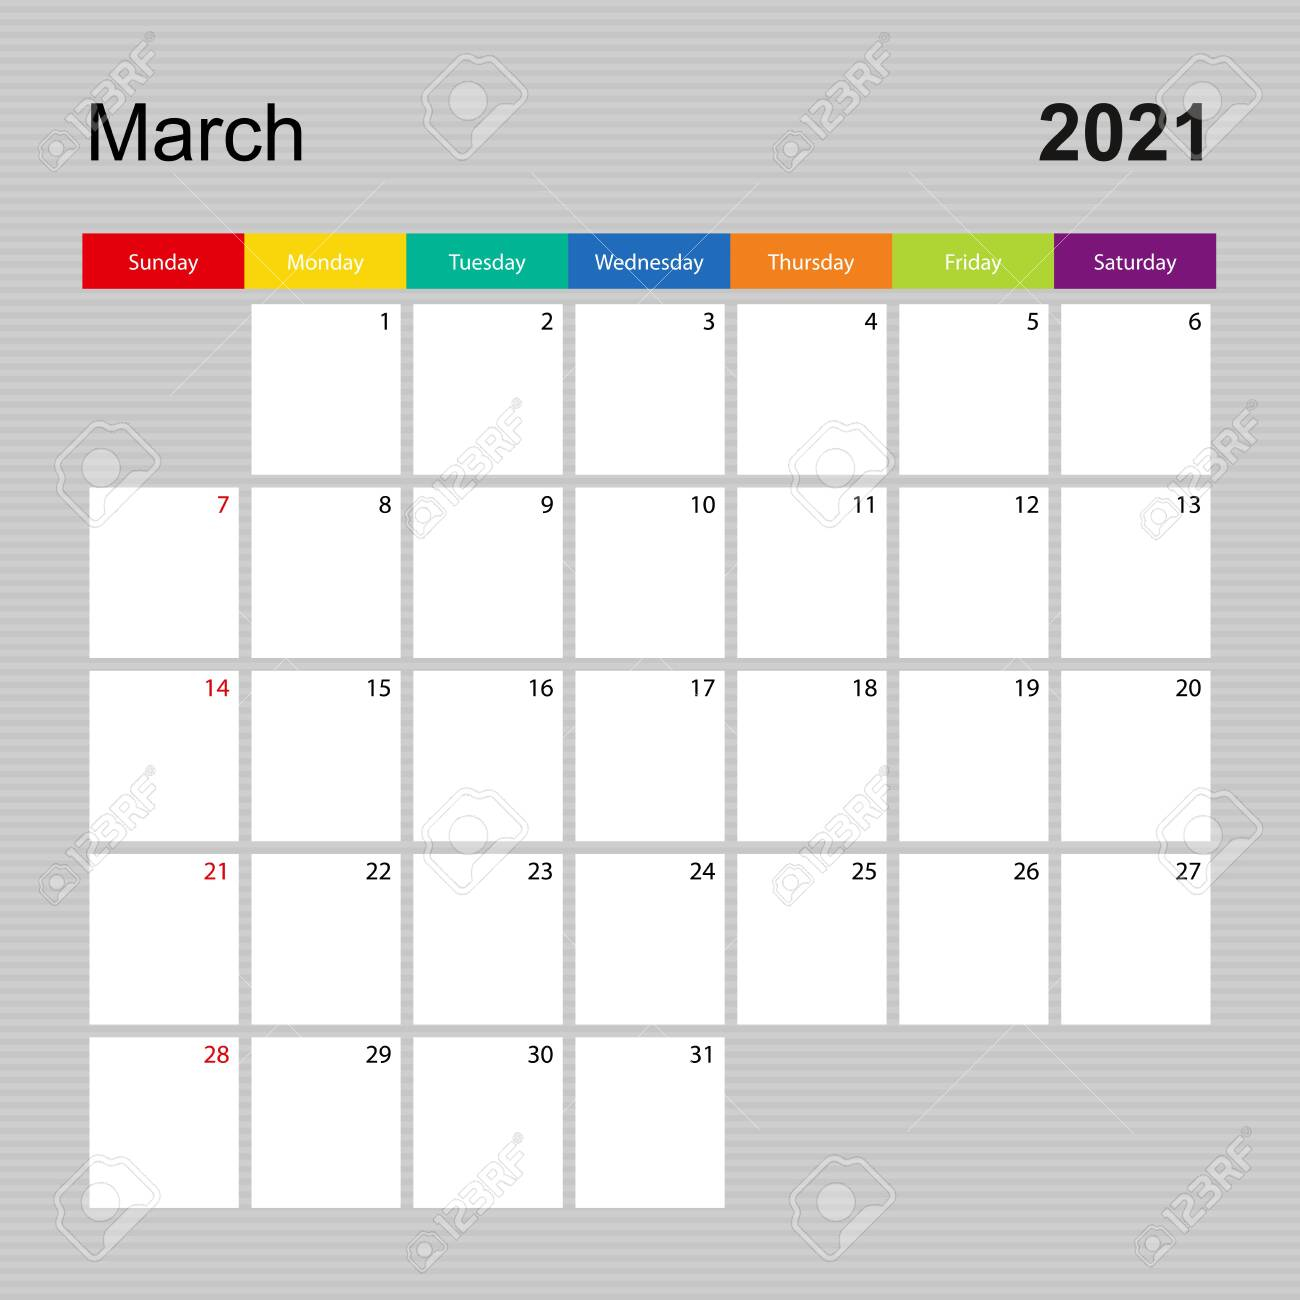 photo Ð¡alendar page for march 2021 wall planner with colorful design week starts on sunday vector calendar